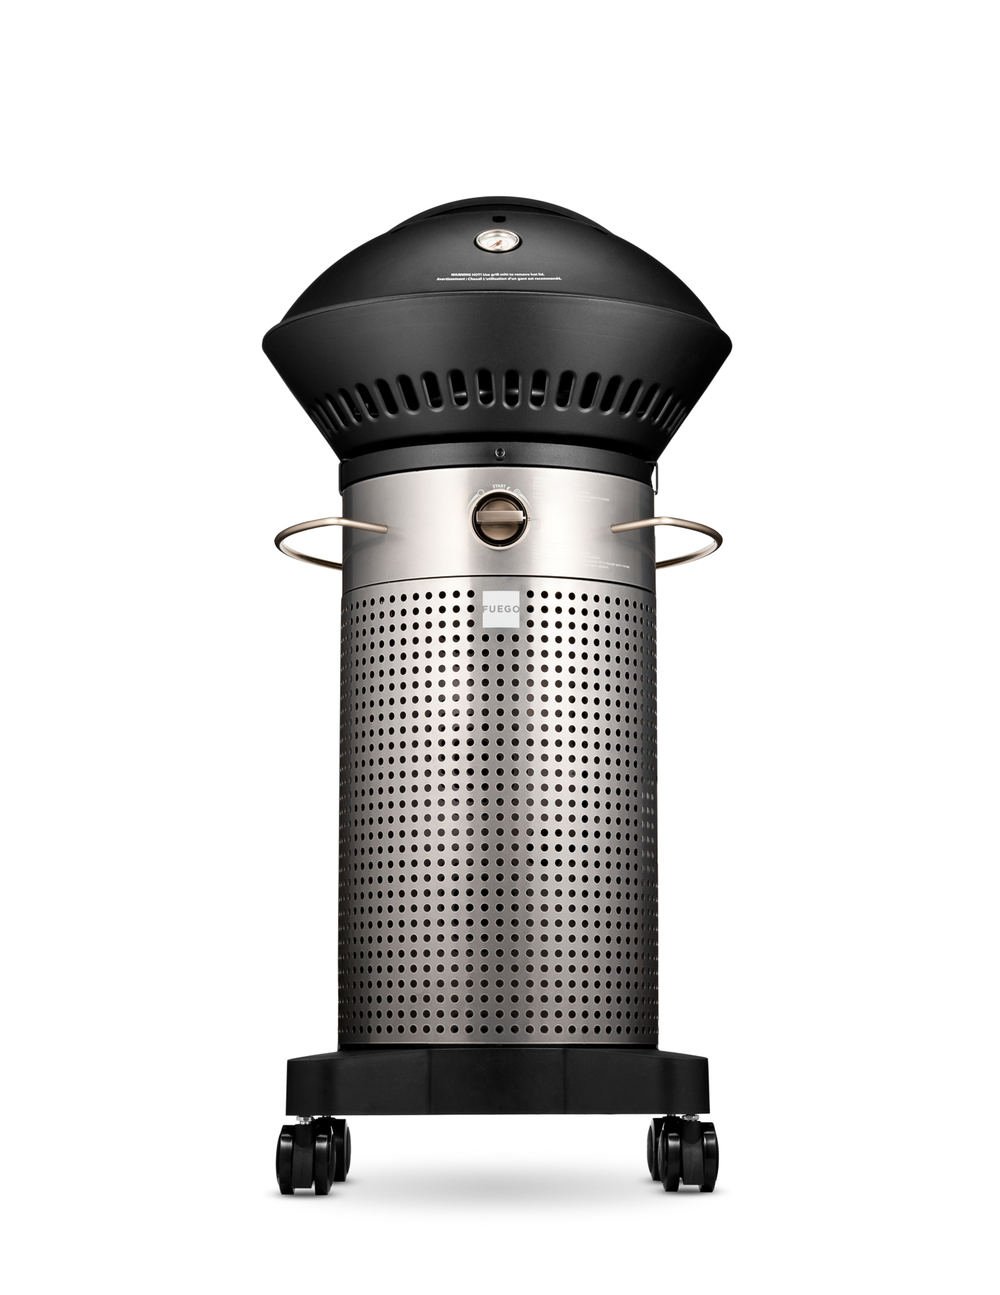 The grill is really attractively designed, and efficient as well.